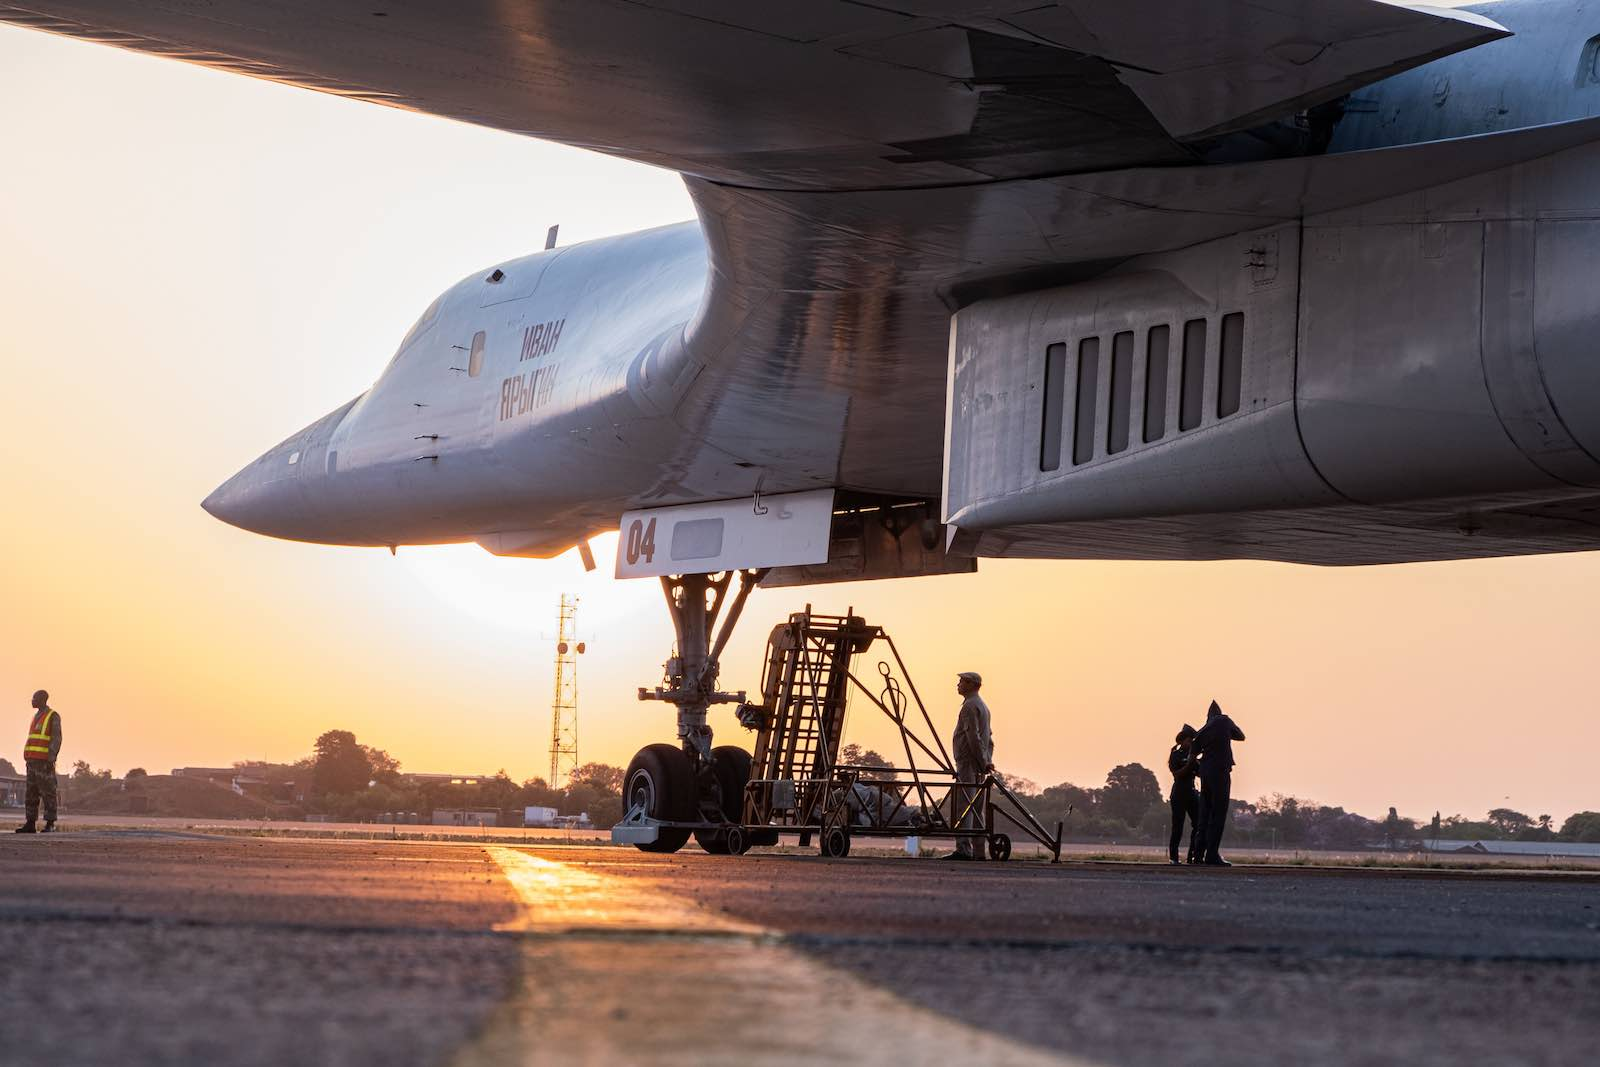 """A Russian Air Force Tupolev Tu-160 """"Blackjack"""" on the tarmac at the Waterkloof Air force Base in Centurion, South Africa, 23 October 2019. (Photo: Emmanuel Croset/AFP/Getty)"""